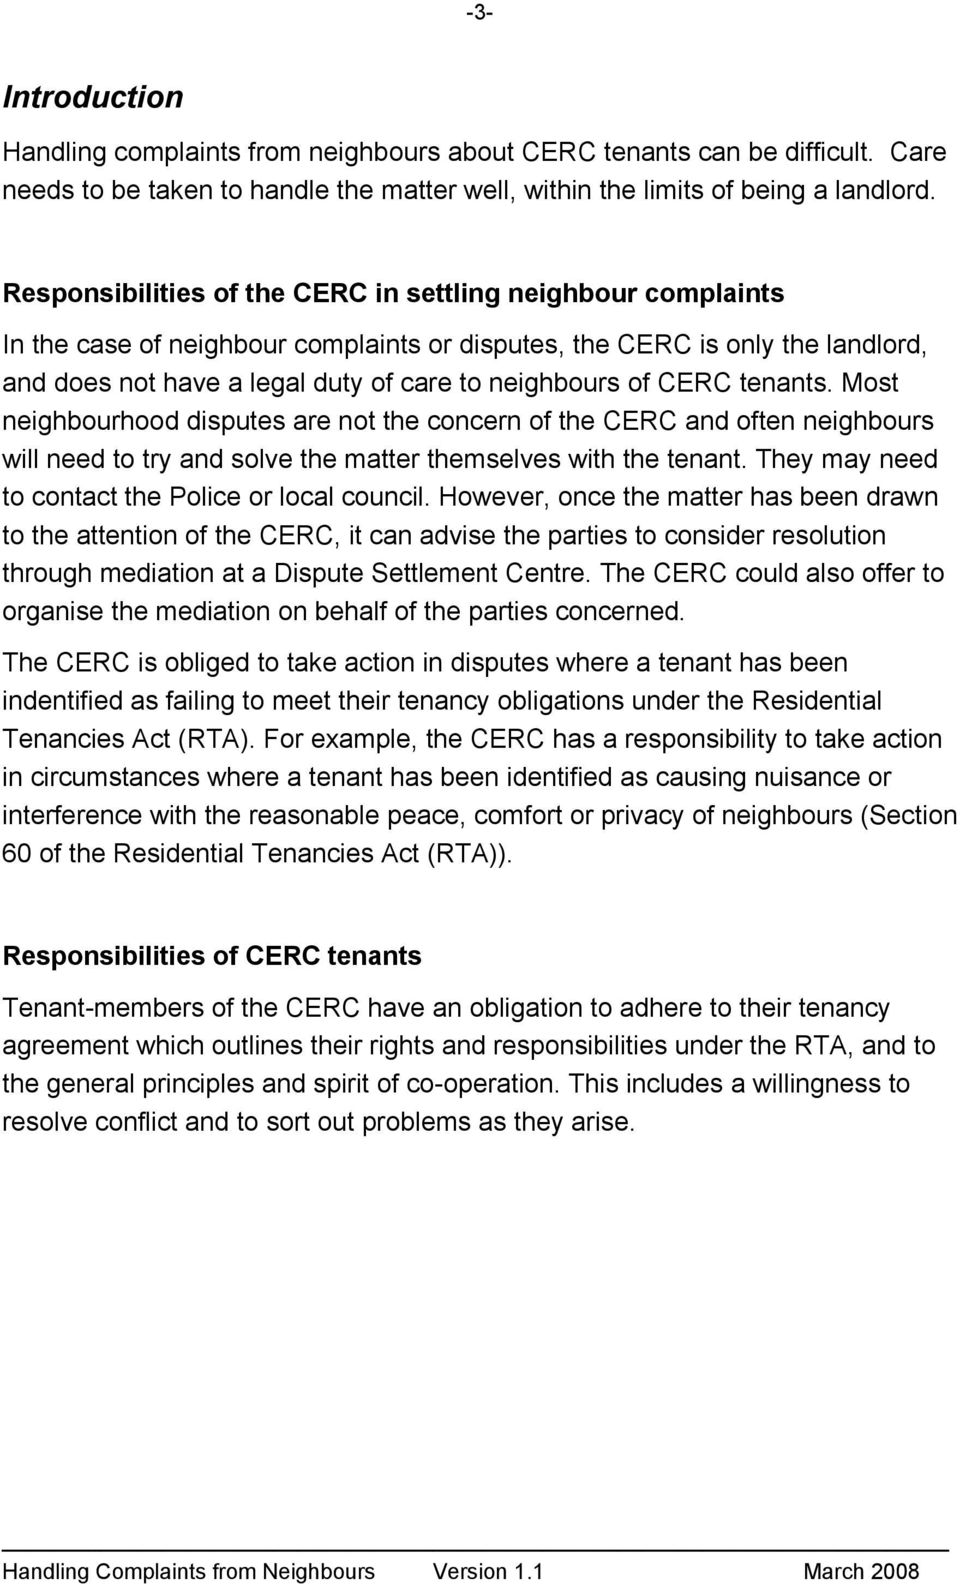 CERC tenants. Most neighbourhood disputes are not the concern of the CERC and often neighbours will need to try and solve the matter themselves with the tenant.